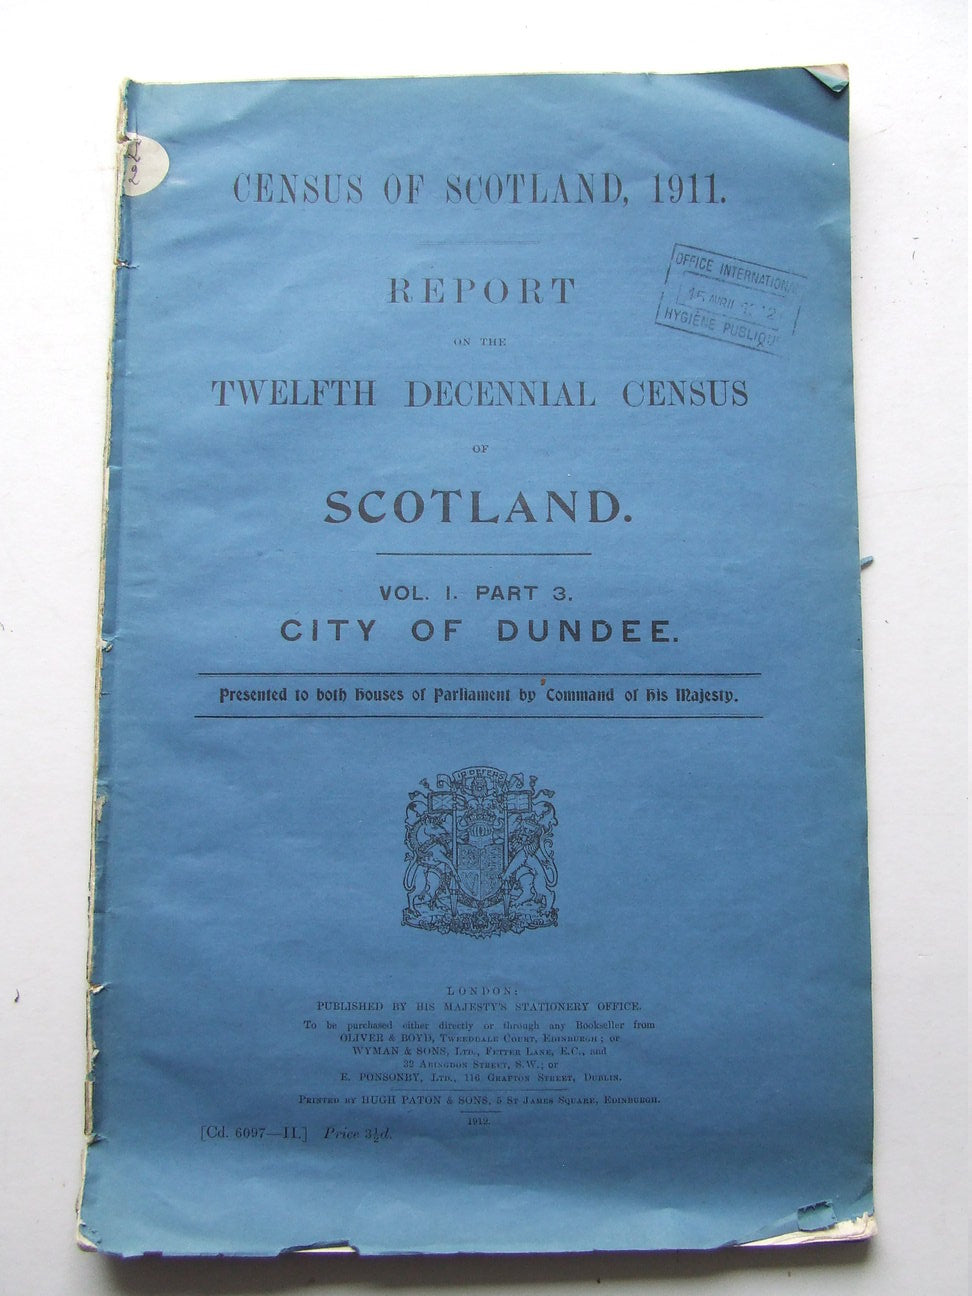 Report on the Twelfth Decennial Census of Scotland [1911].....City of Dundee